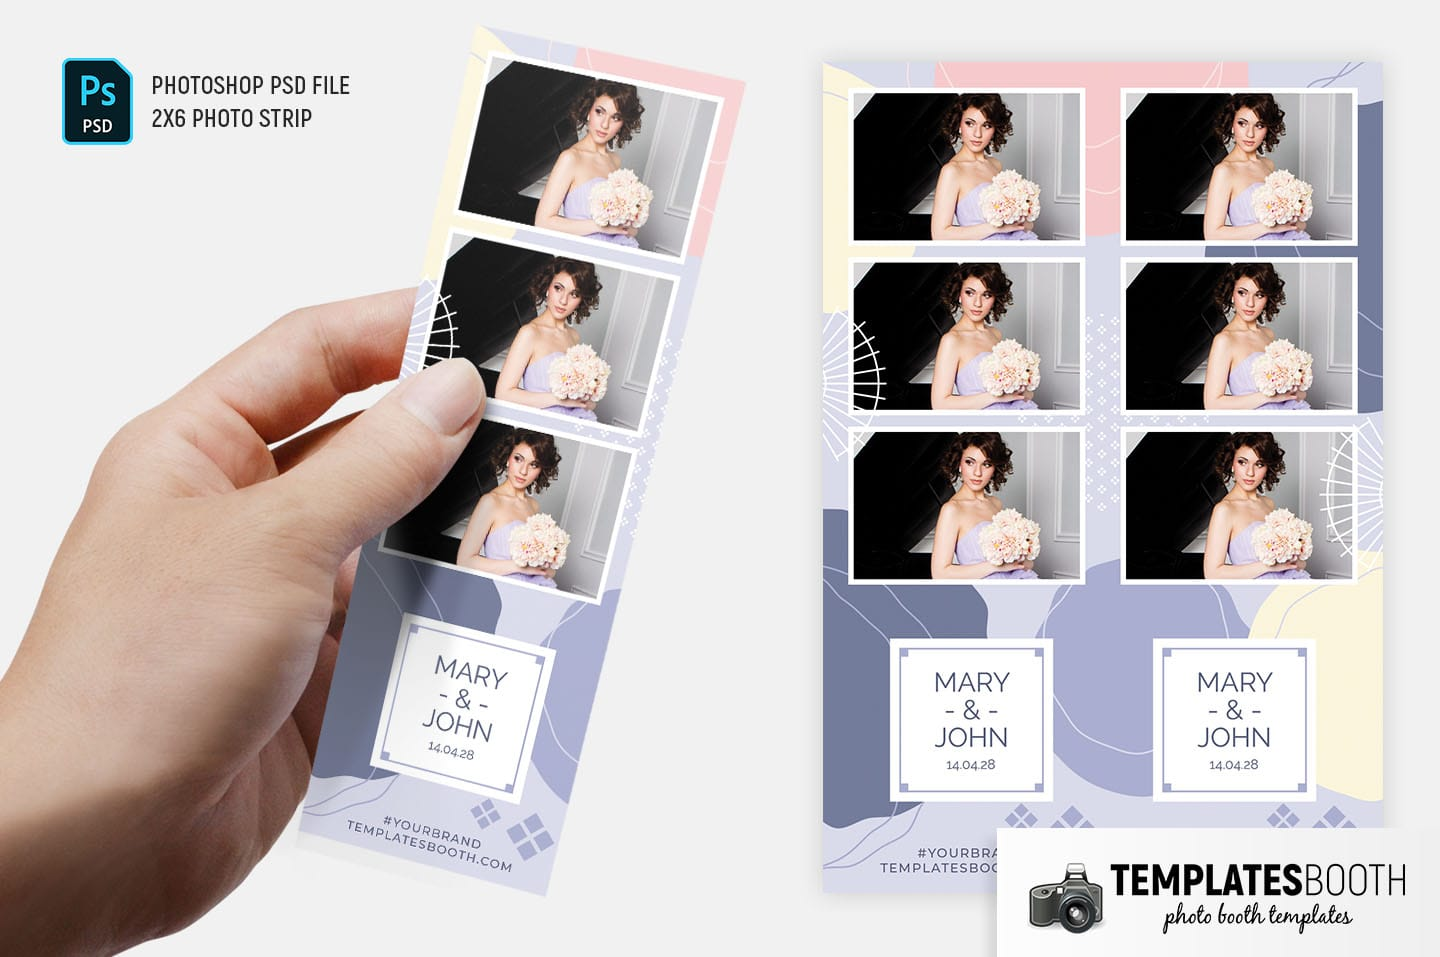 Abstract Pastel Photo Booth Template (2x6 photo strip)